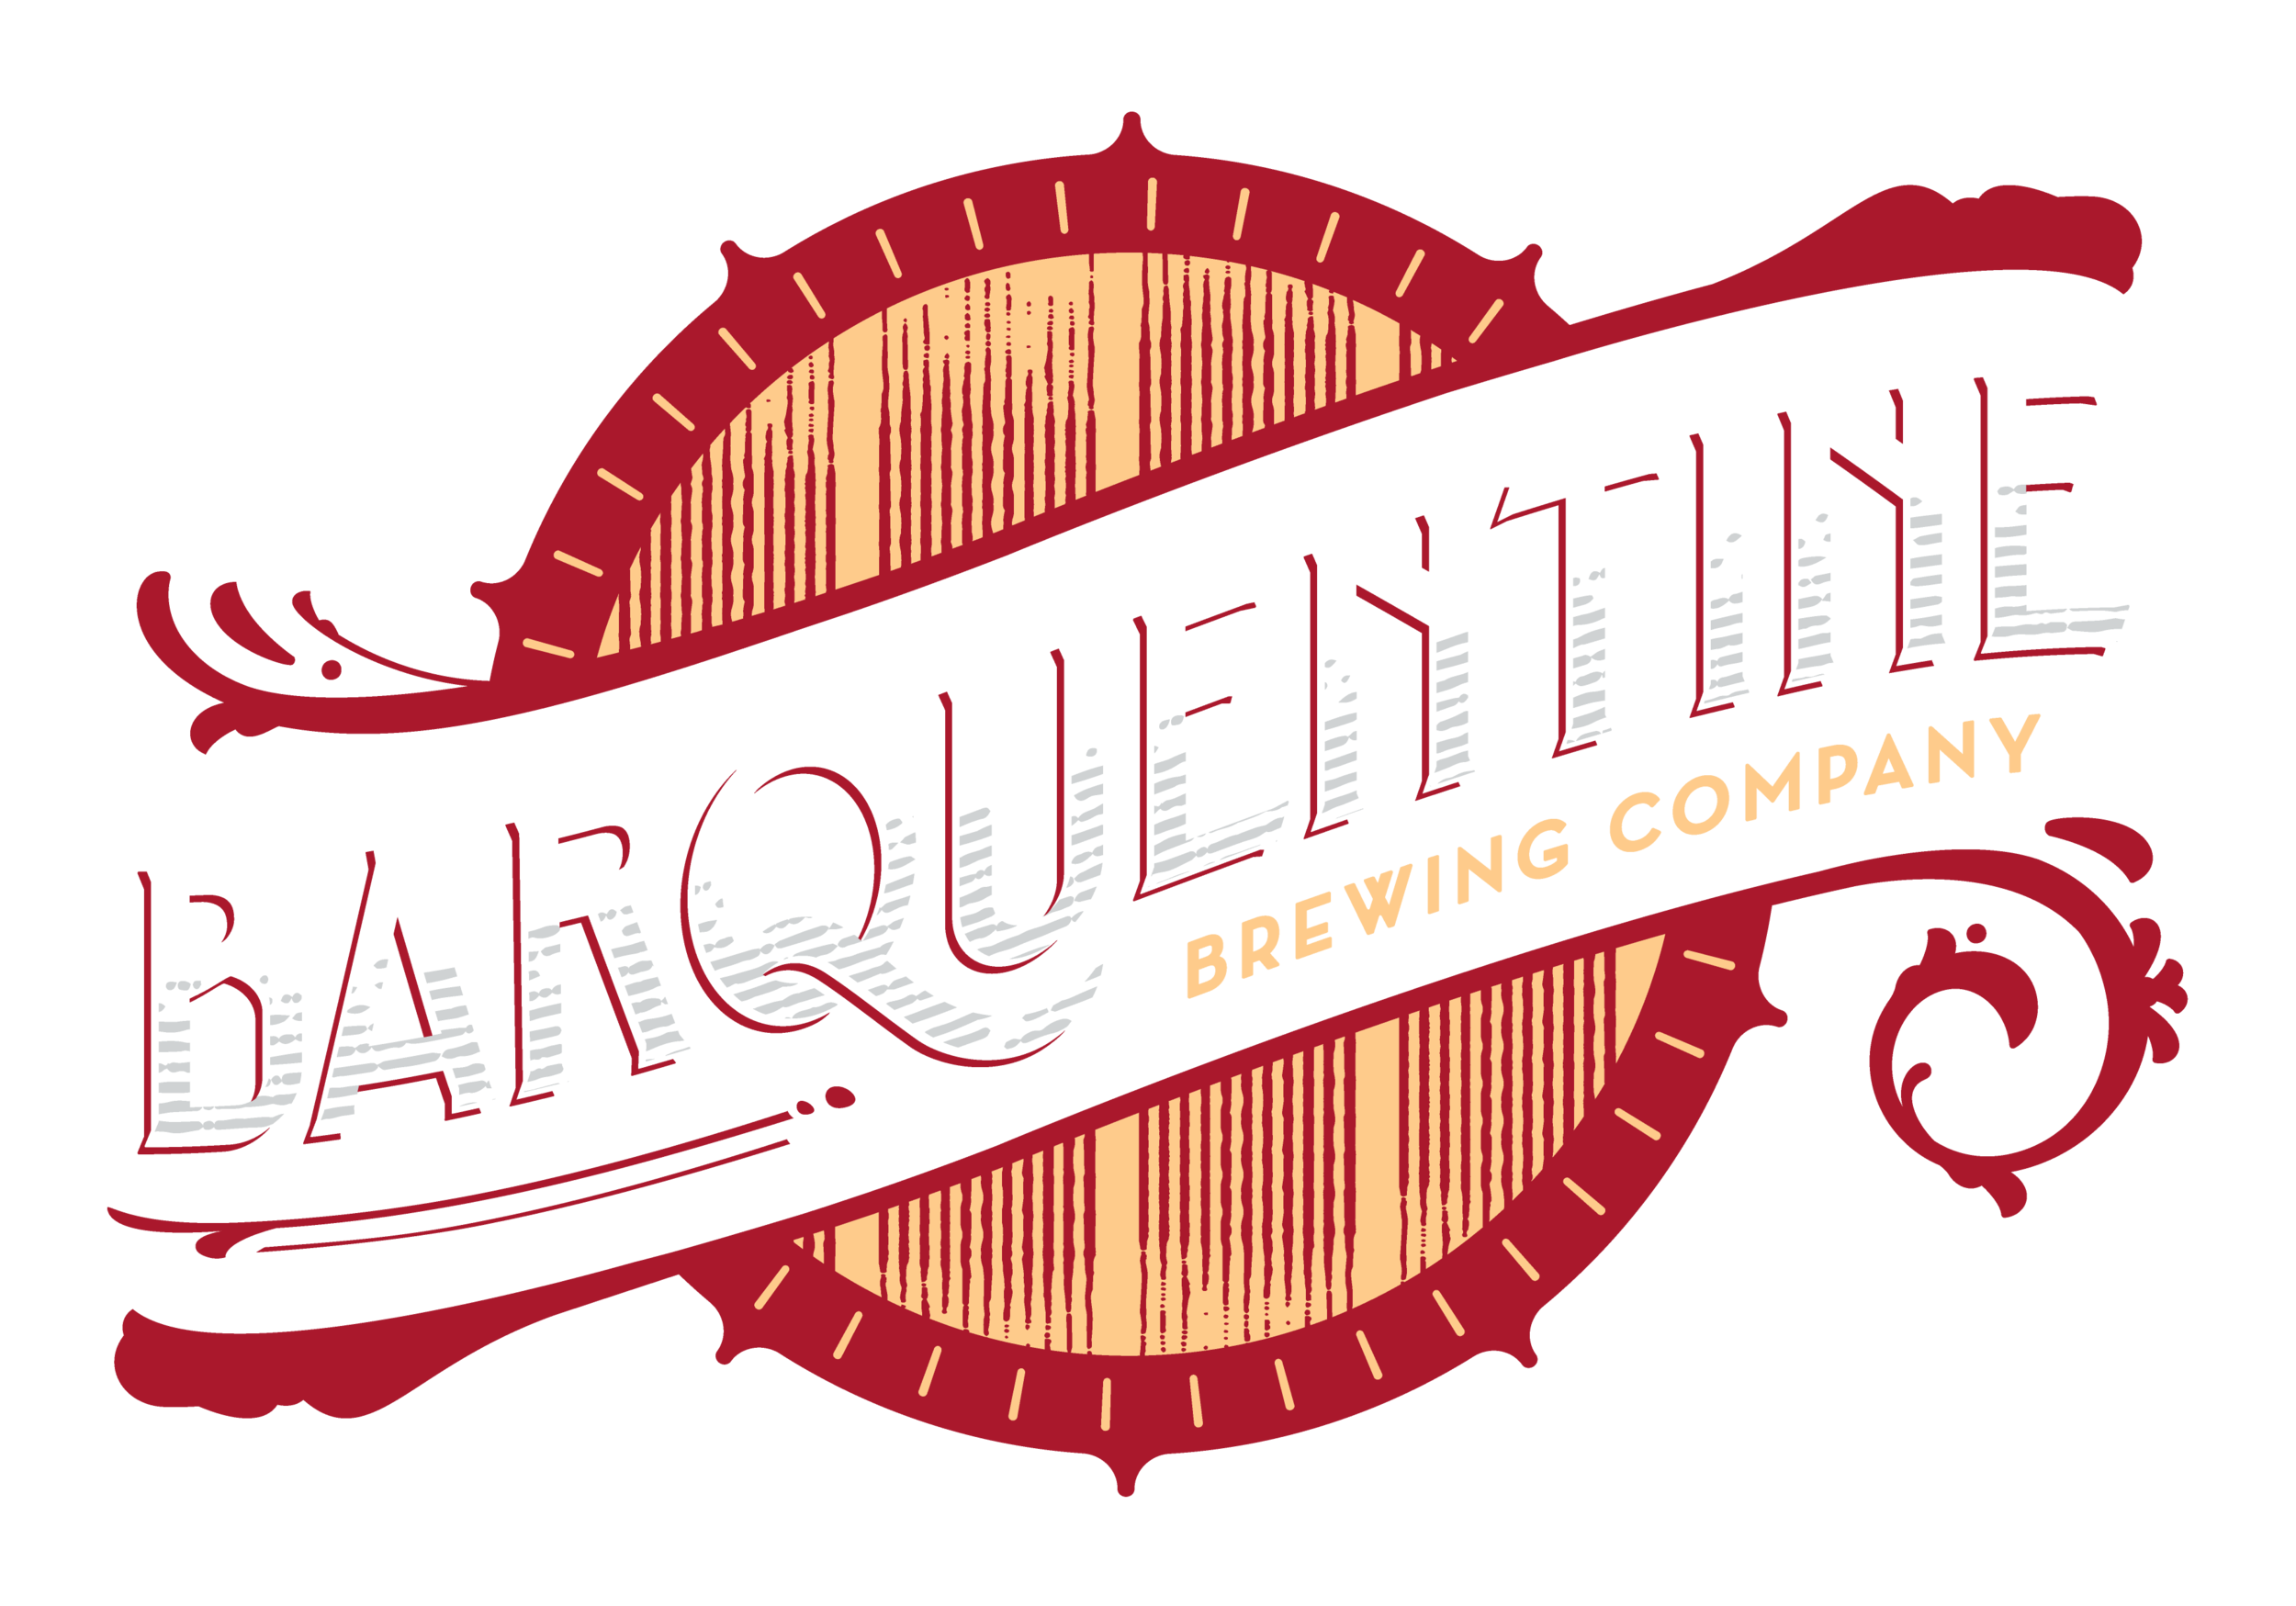 BarquentineBrewing_LogoDesign_Final_Inverse_RGB.png